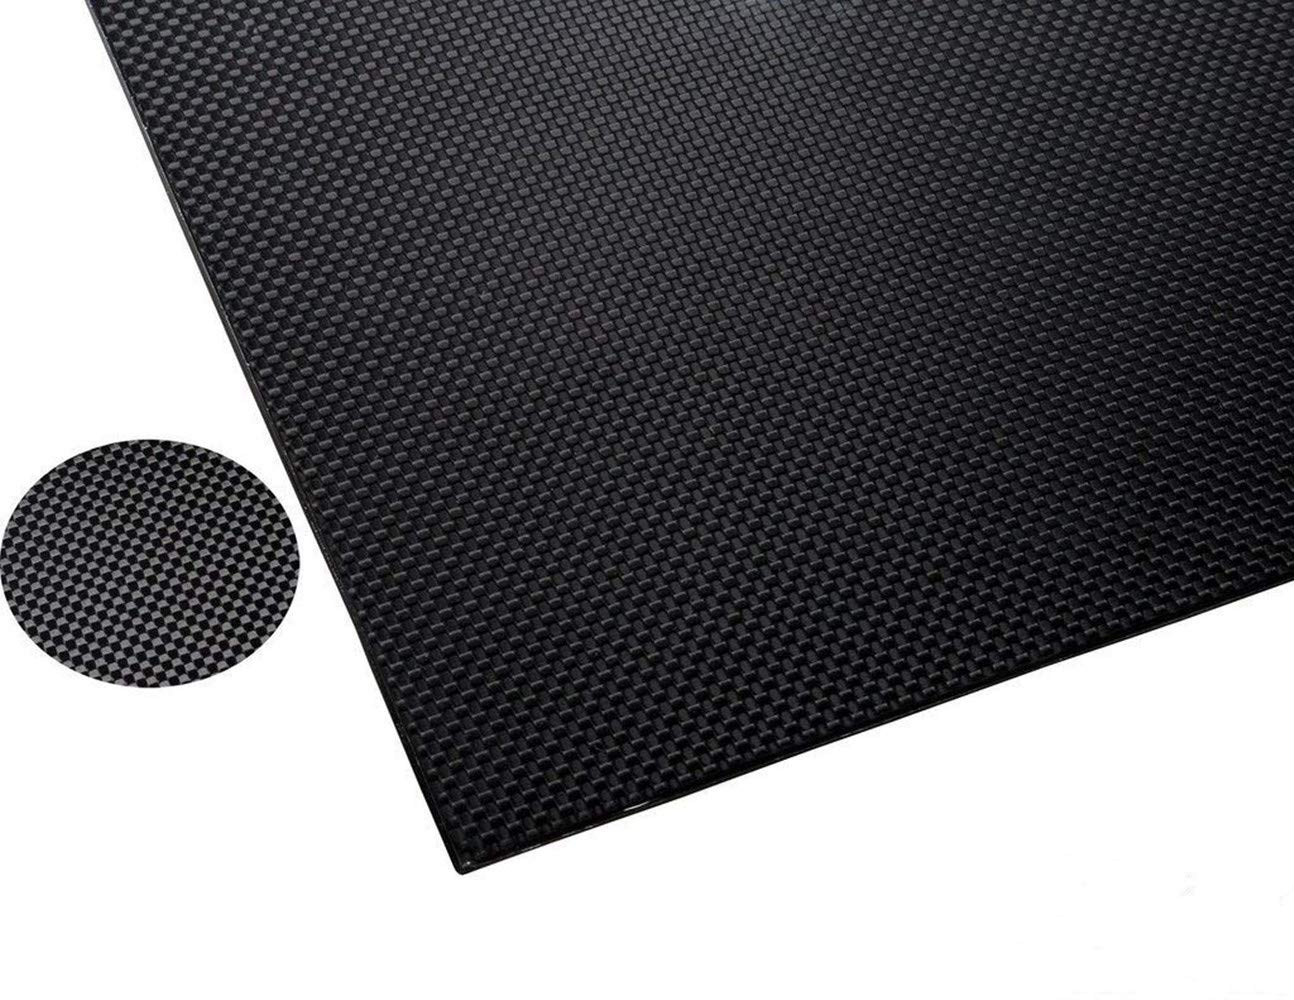 FiveEyes 500X500X2MM 100% Pure Carbon Fiber Sheet 3K Plain Weave Panel Plate(Glossy Finish) by FiveEyes